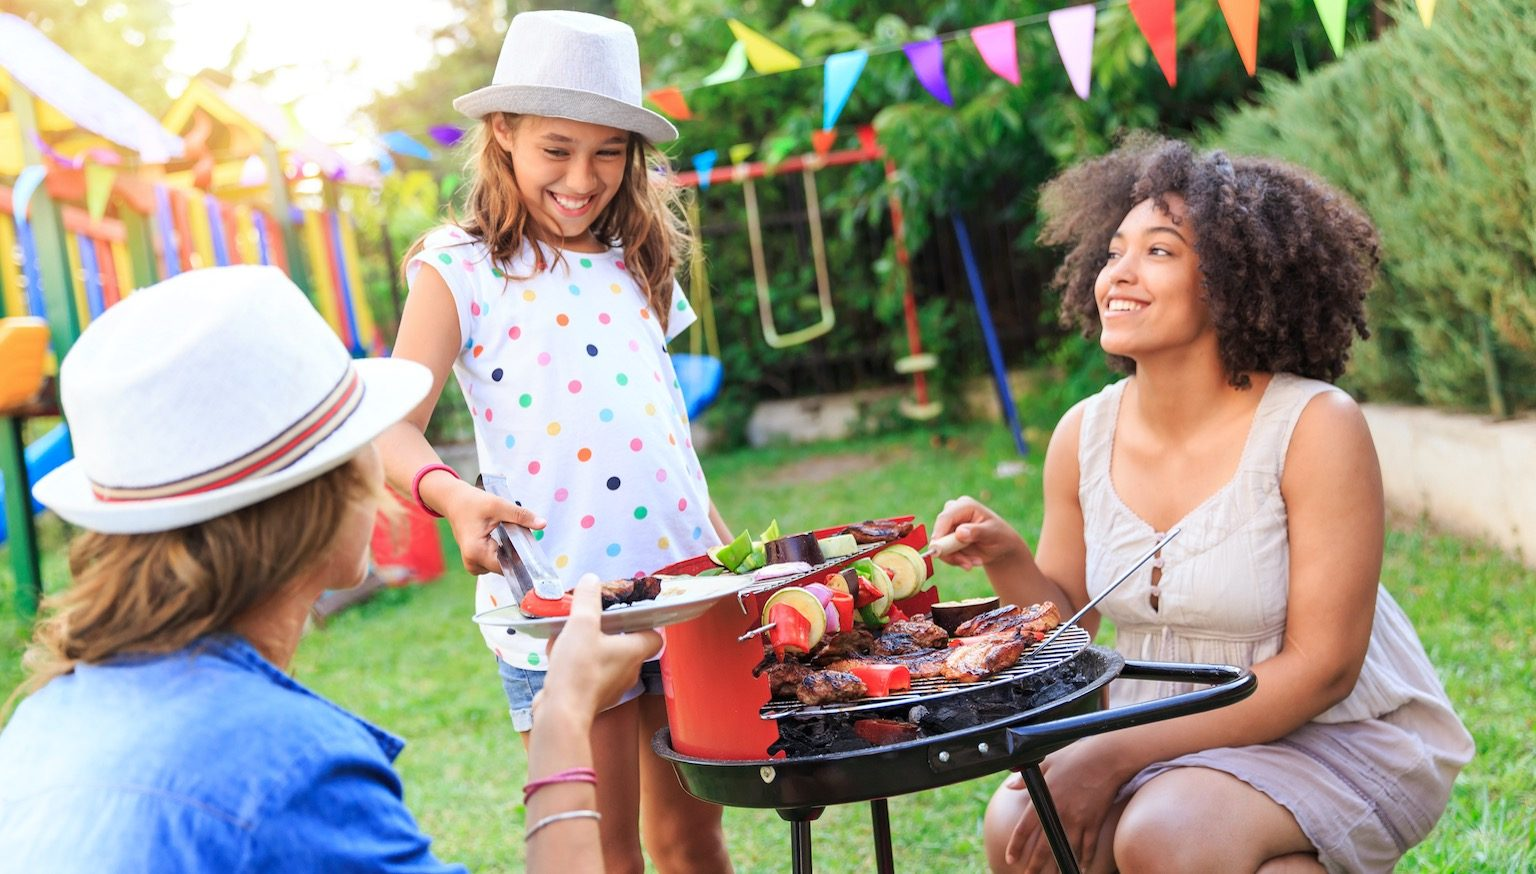 Family cooking on a barbecue in a backyard